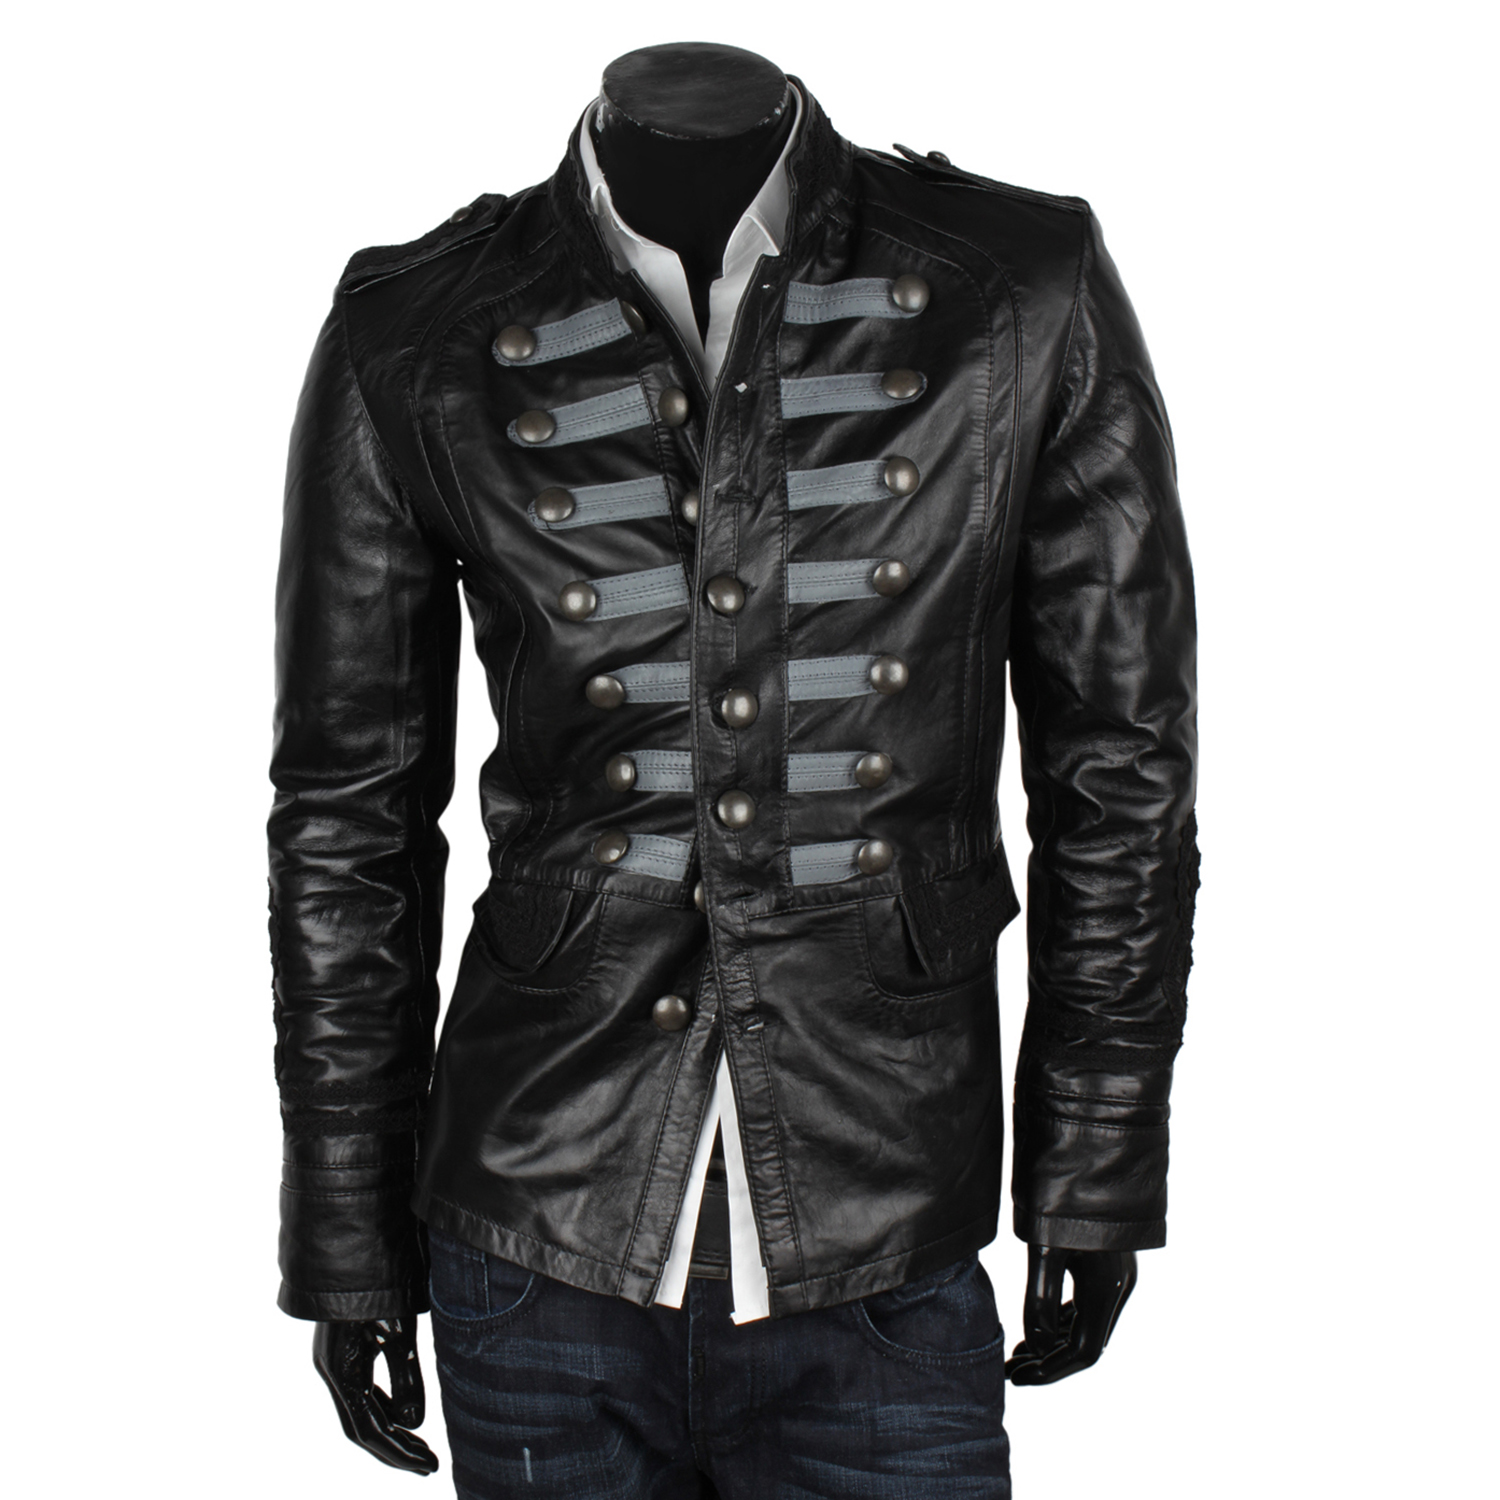 van hill herren lederjacke 87085 uniform leder slim biker. Black Bedroom Furniture Sets. Home Design Ideas